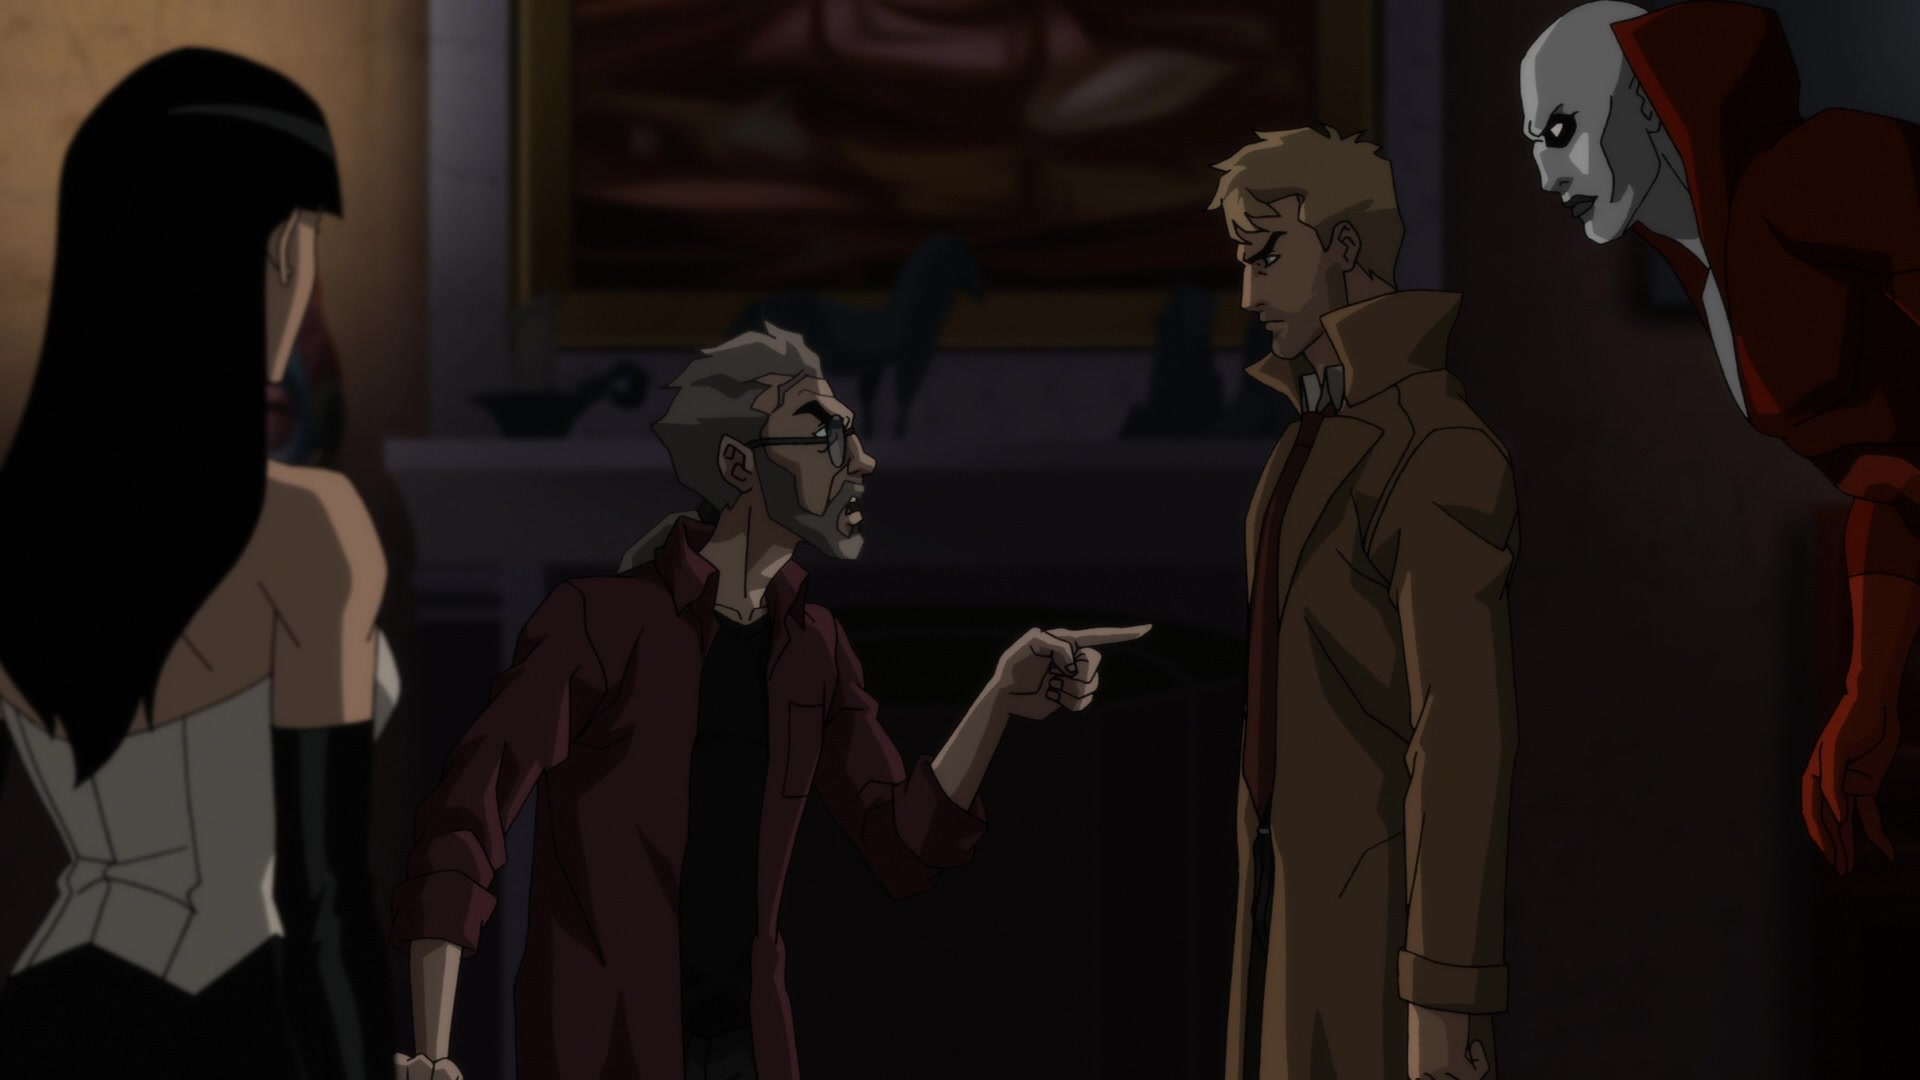 justice_league_dark_2017_screenshot_0757.jpg